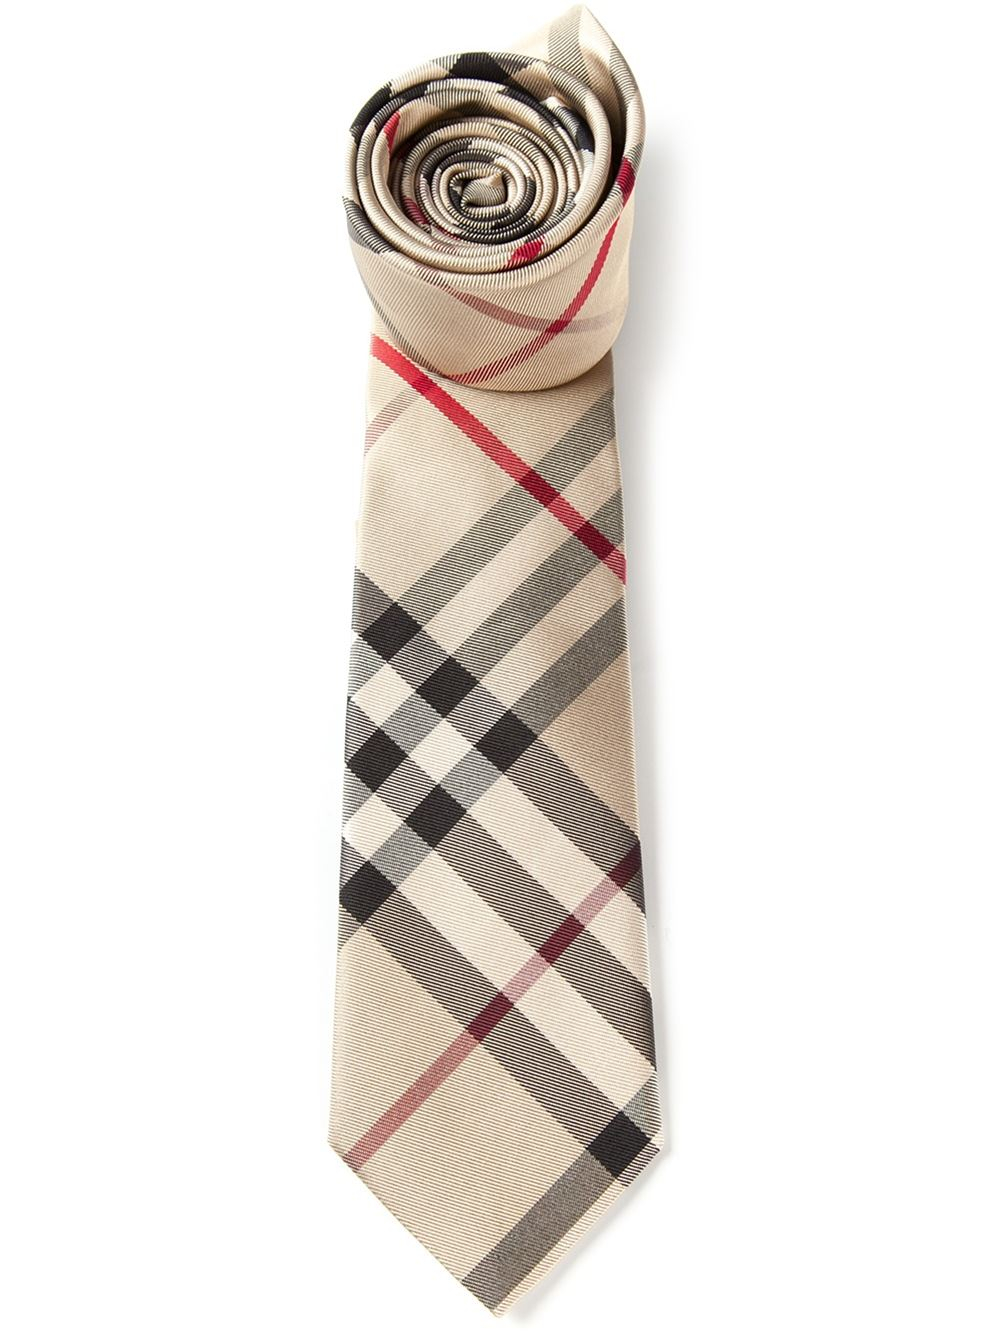 63d341a51658 ... inexpensive lyst burberry nova check tie in brown for men db18a 33312